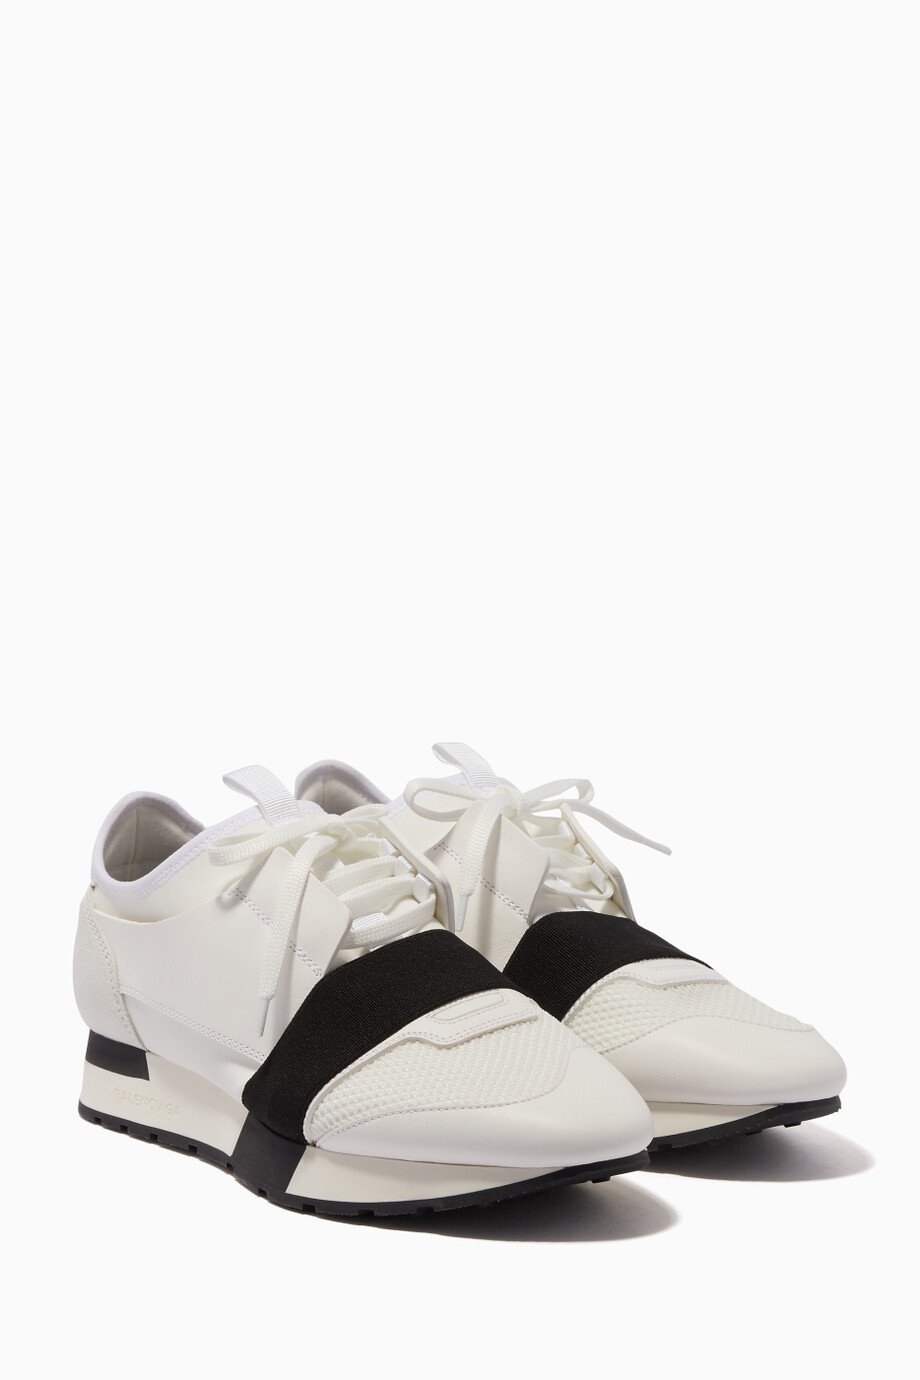 Shop Balenciaga White White Race Runner Low Top Sneakers for